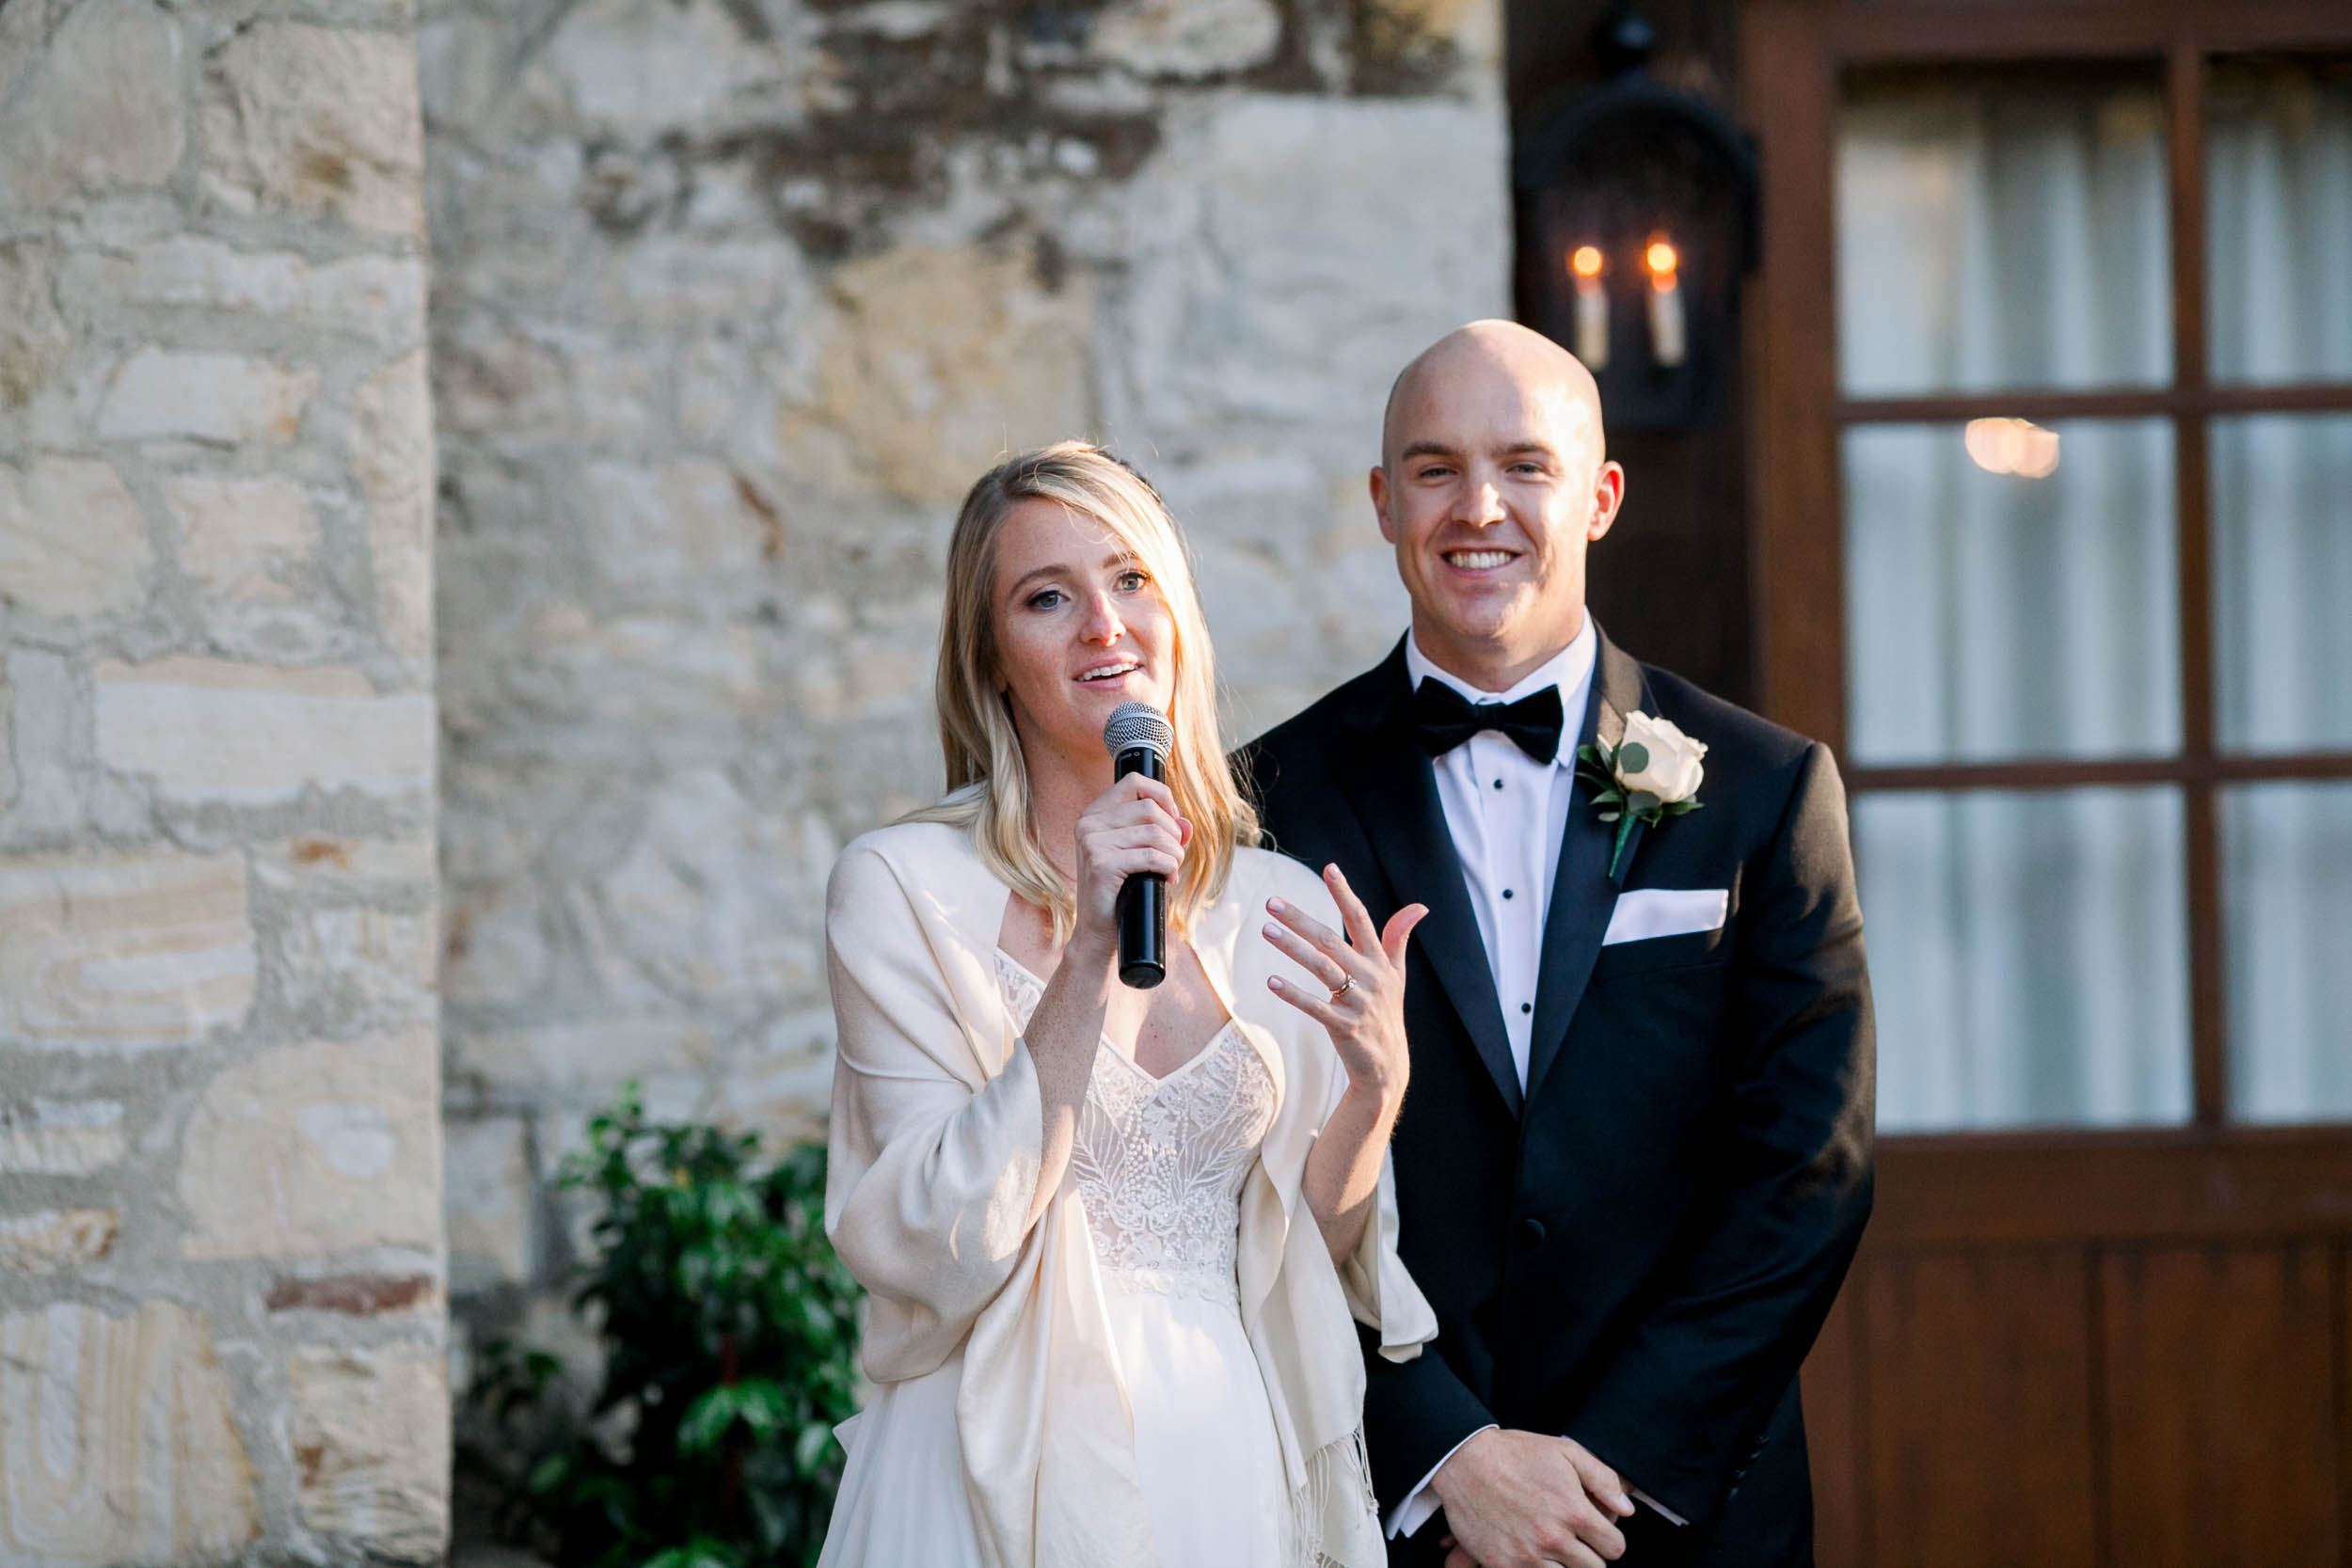 C+D_Holman Ranch Wedding_Carmel Valley_Buena Lane Photography_060619_ER671.jpg